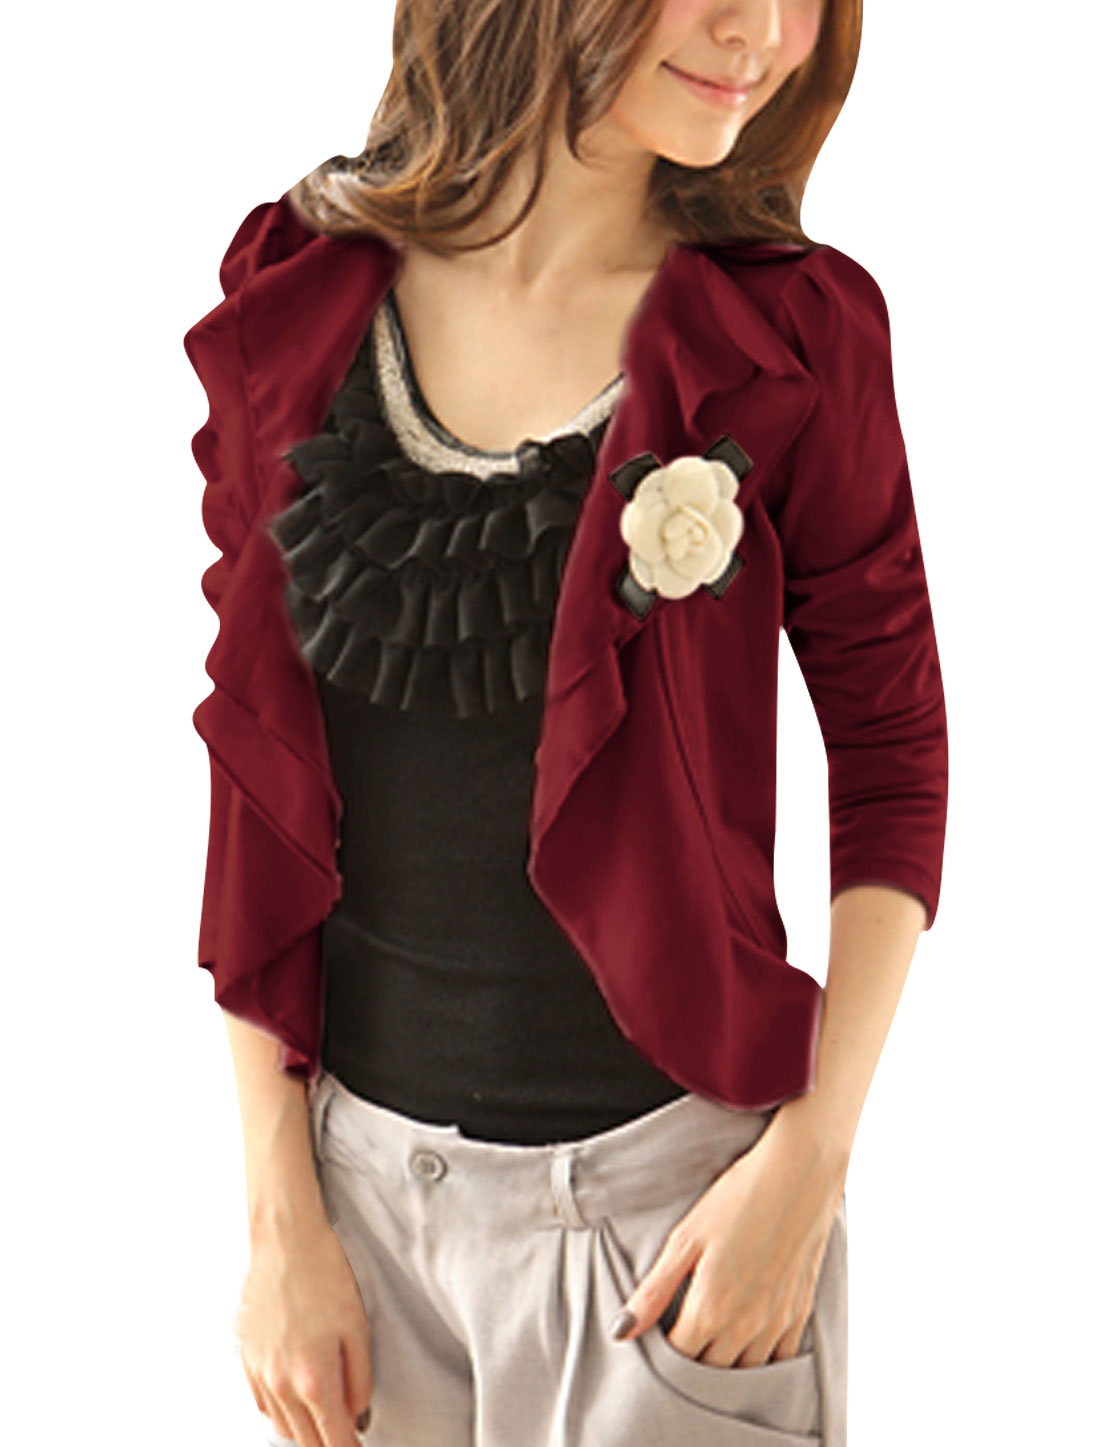 Ladies Flower Brooch Self Tie String Leisure Soft Cropped Blazer Burgundy L